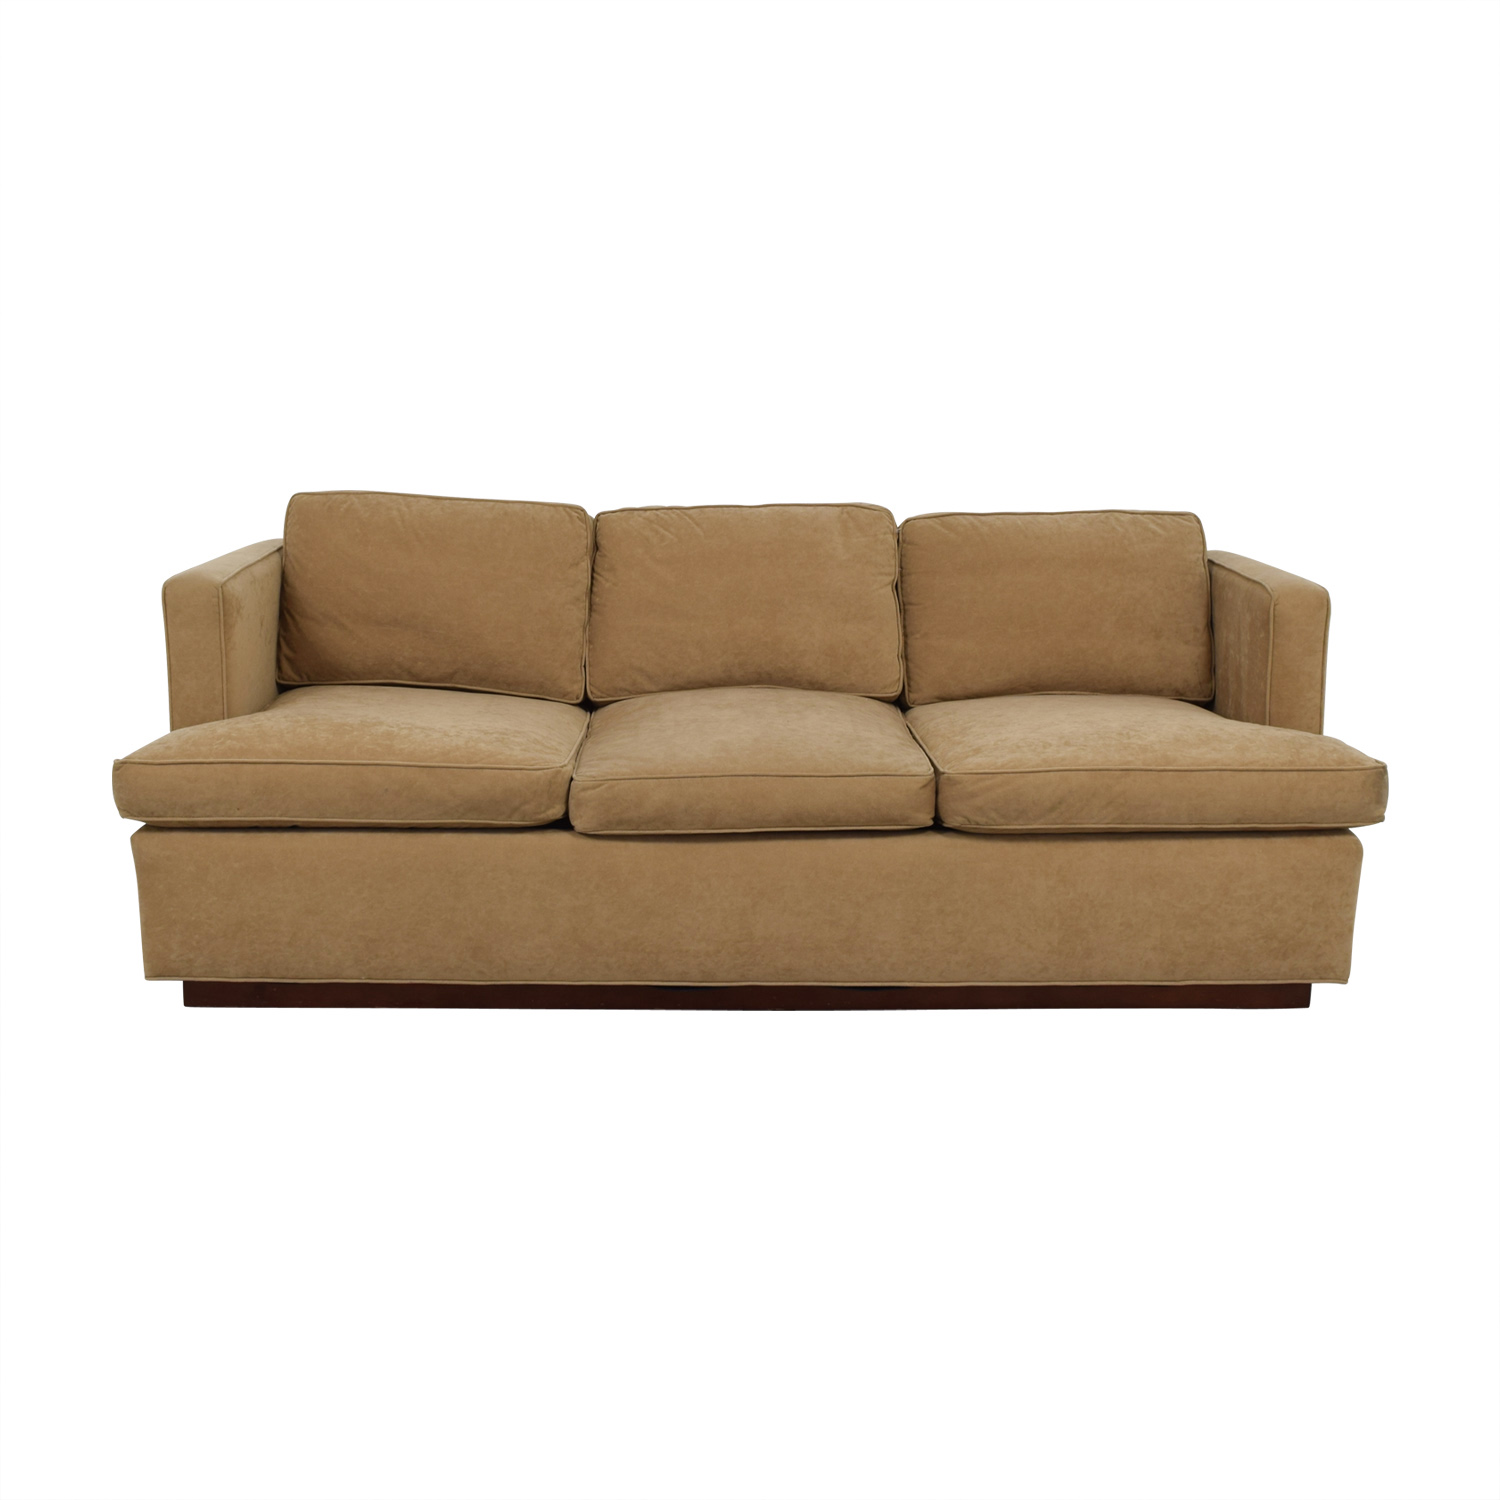 buy Beige Three-Cushion Sofa